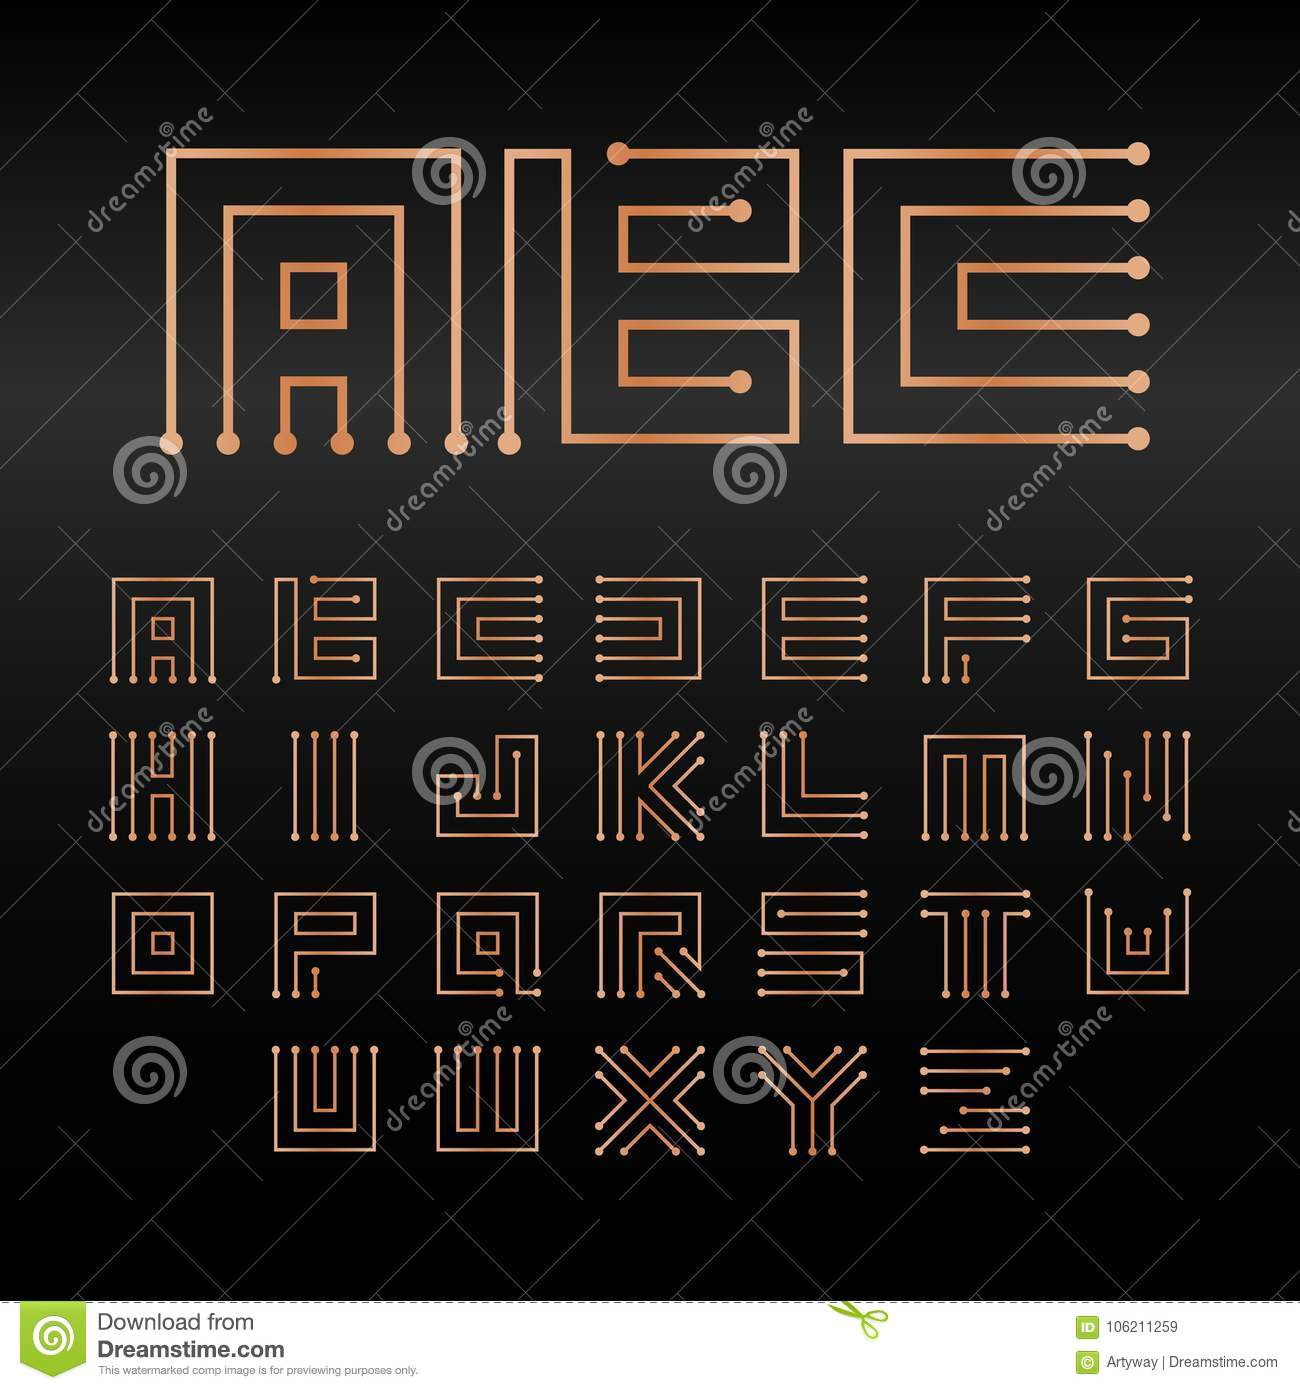 Digital Vector Alphabet Isolated Abstract Technology Font Electronic Circuits Diagrams Microchip Abc Logo Set Circuitry